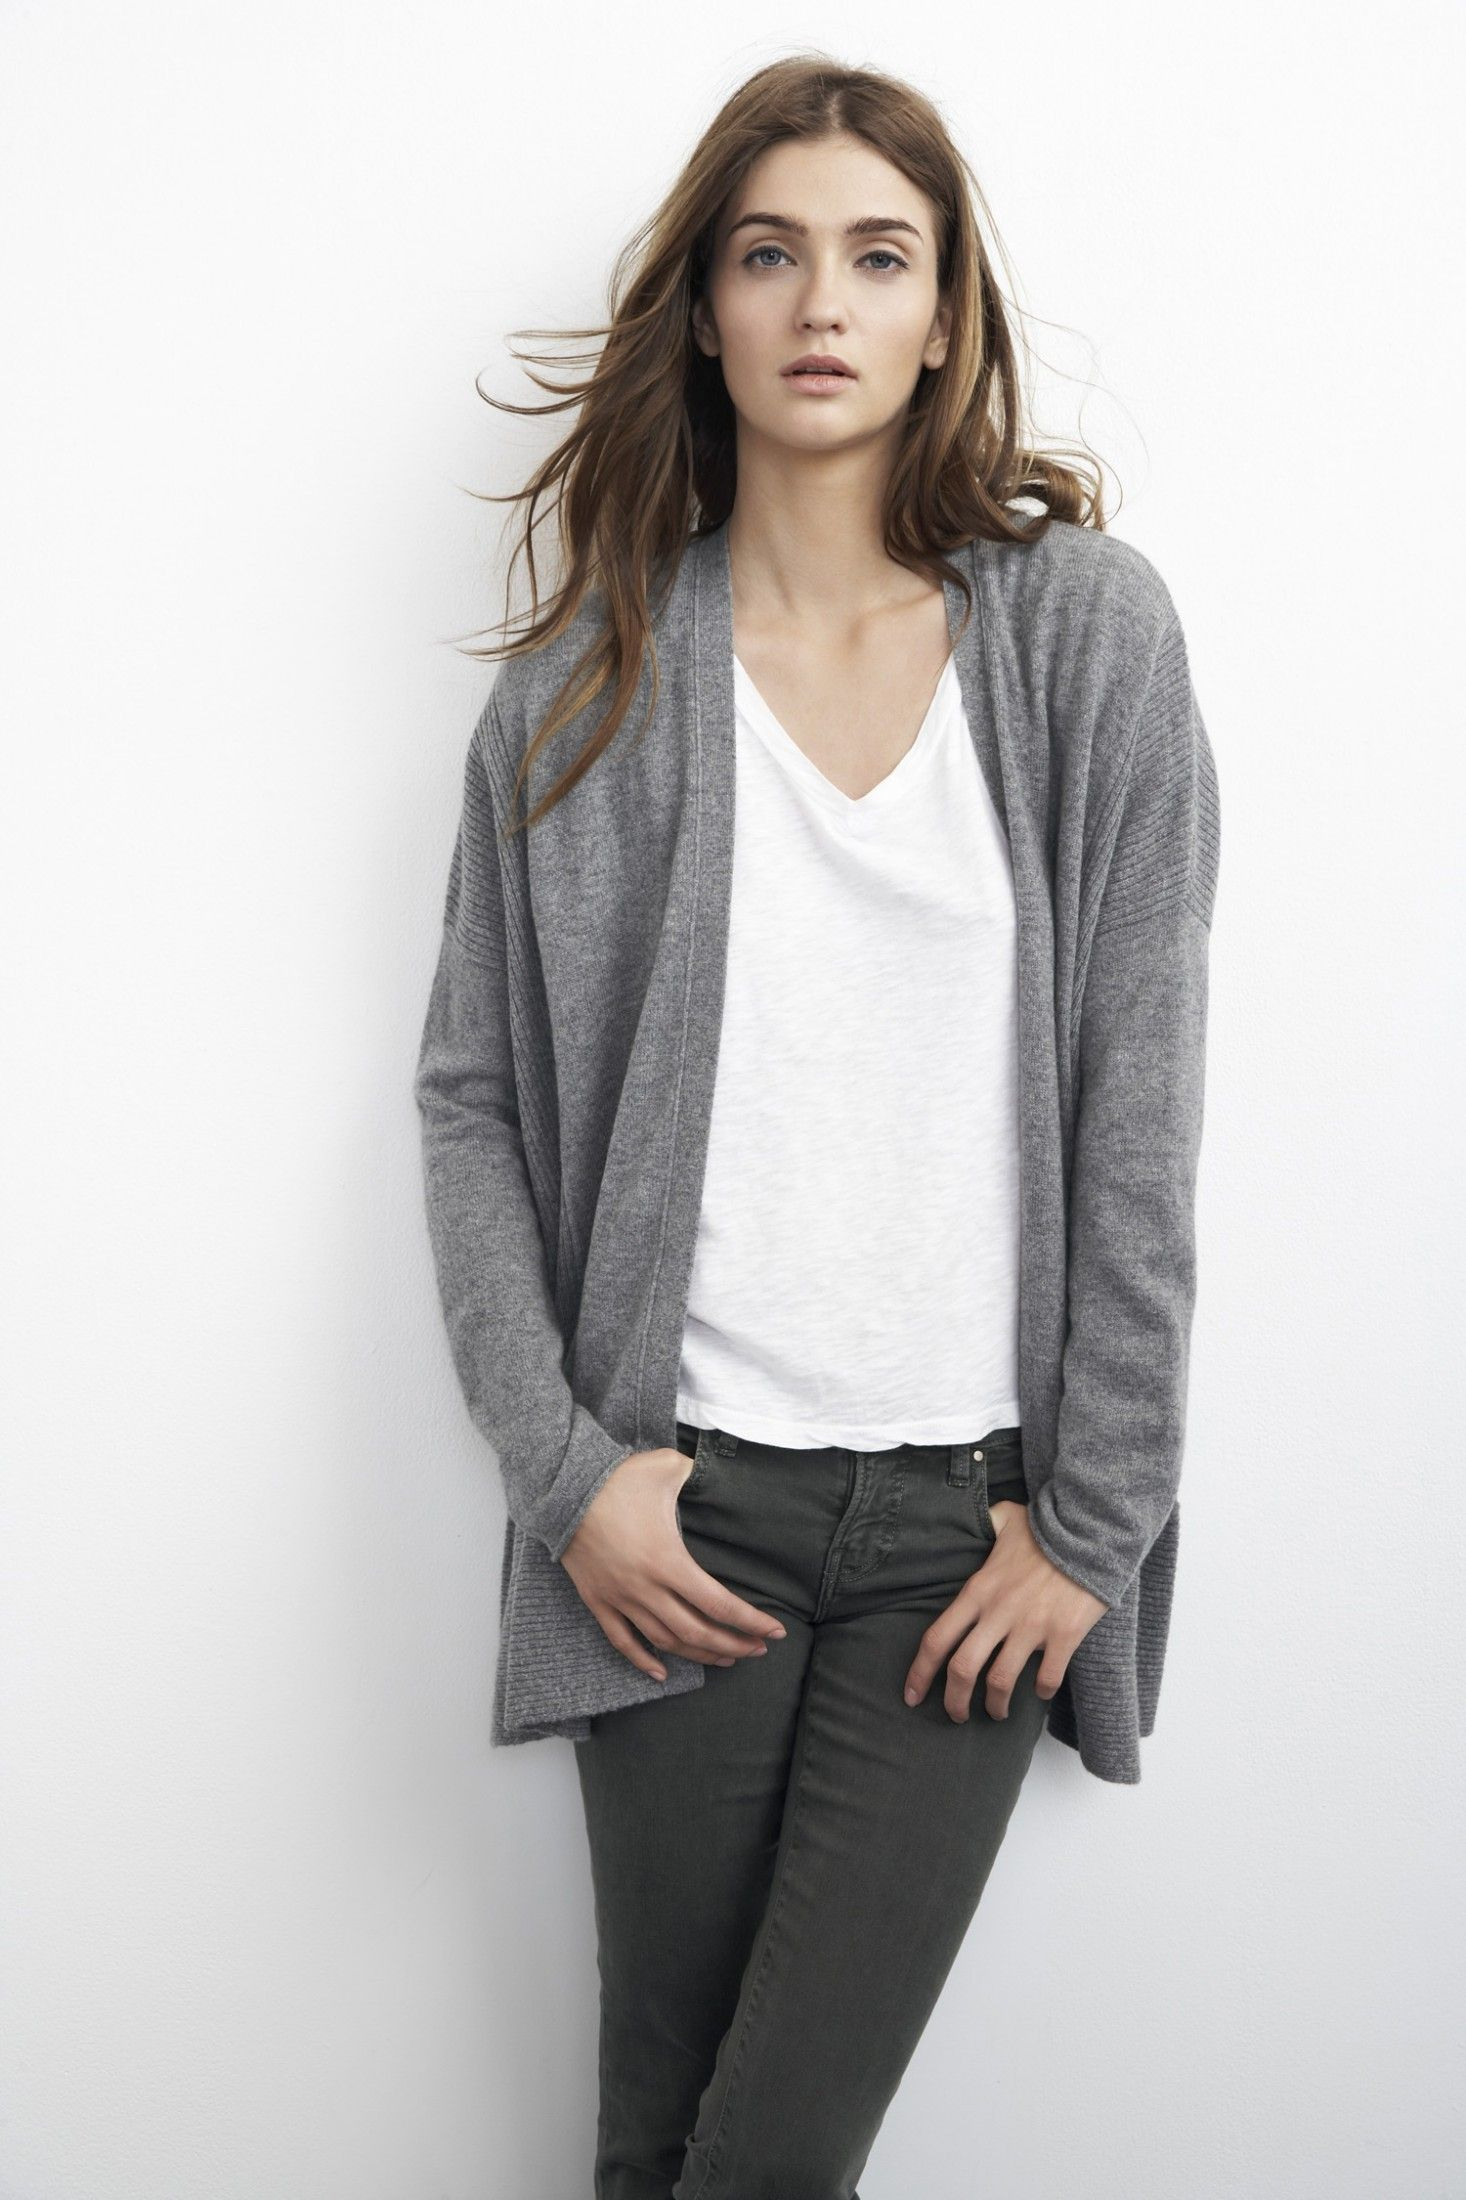 Cashmere Cardigan :: Boyfriend Fit Sweater :: Luxury Cashmere ...